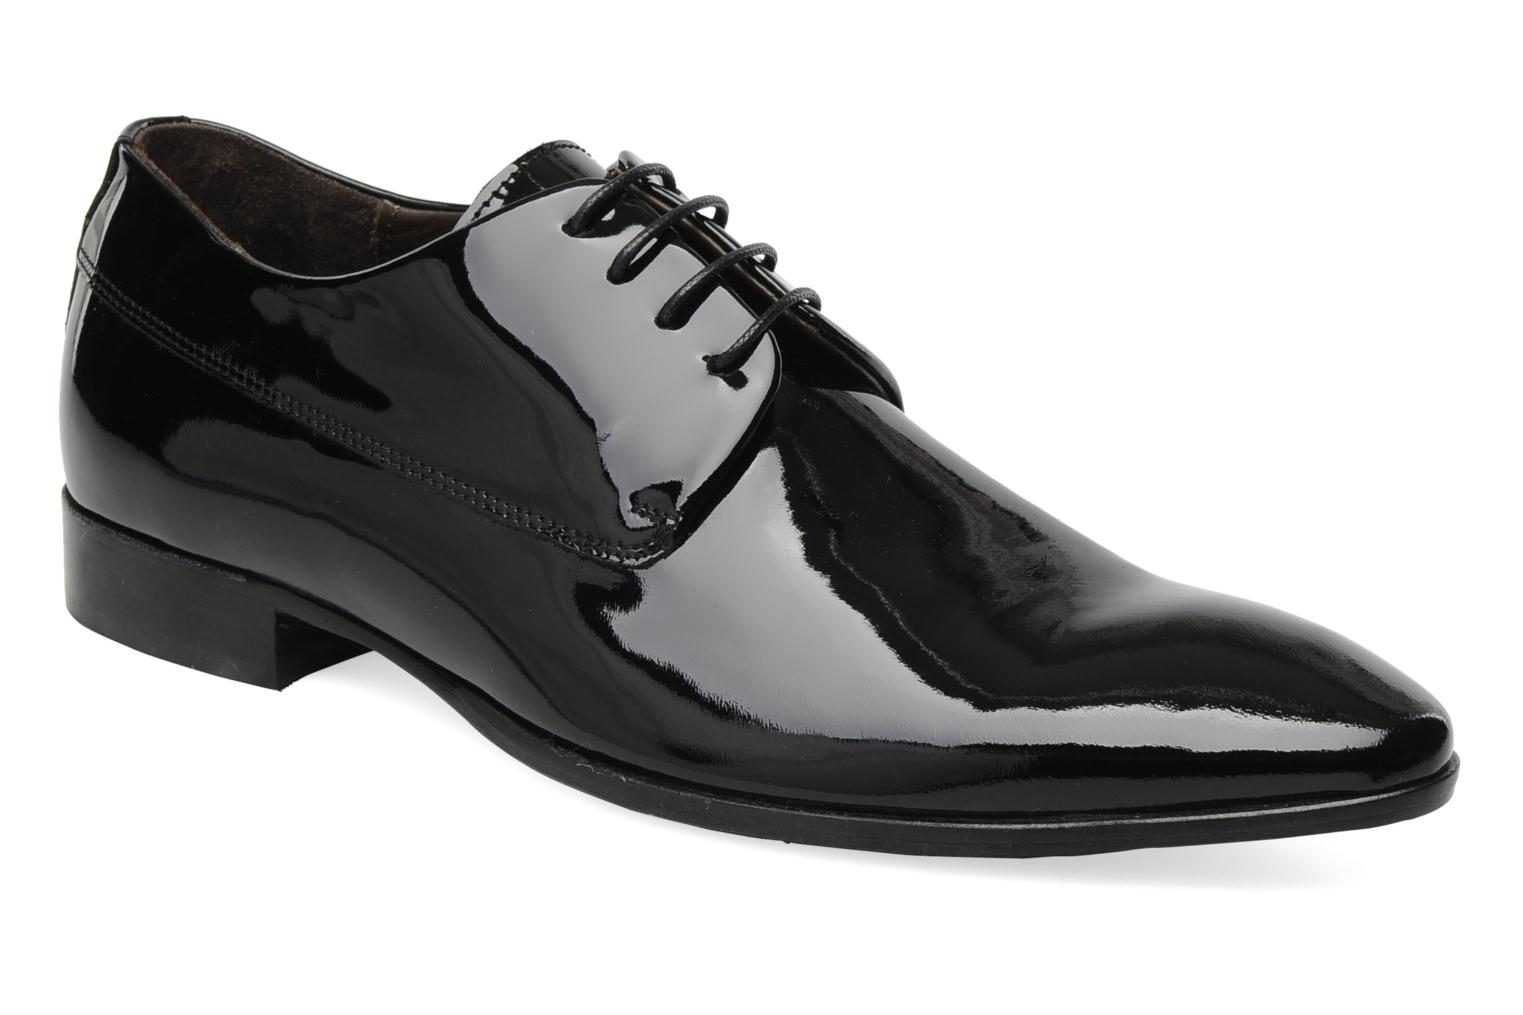 Marques Chaussure homme Marvin&Co homme Narlo River Nero